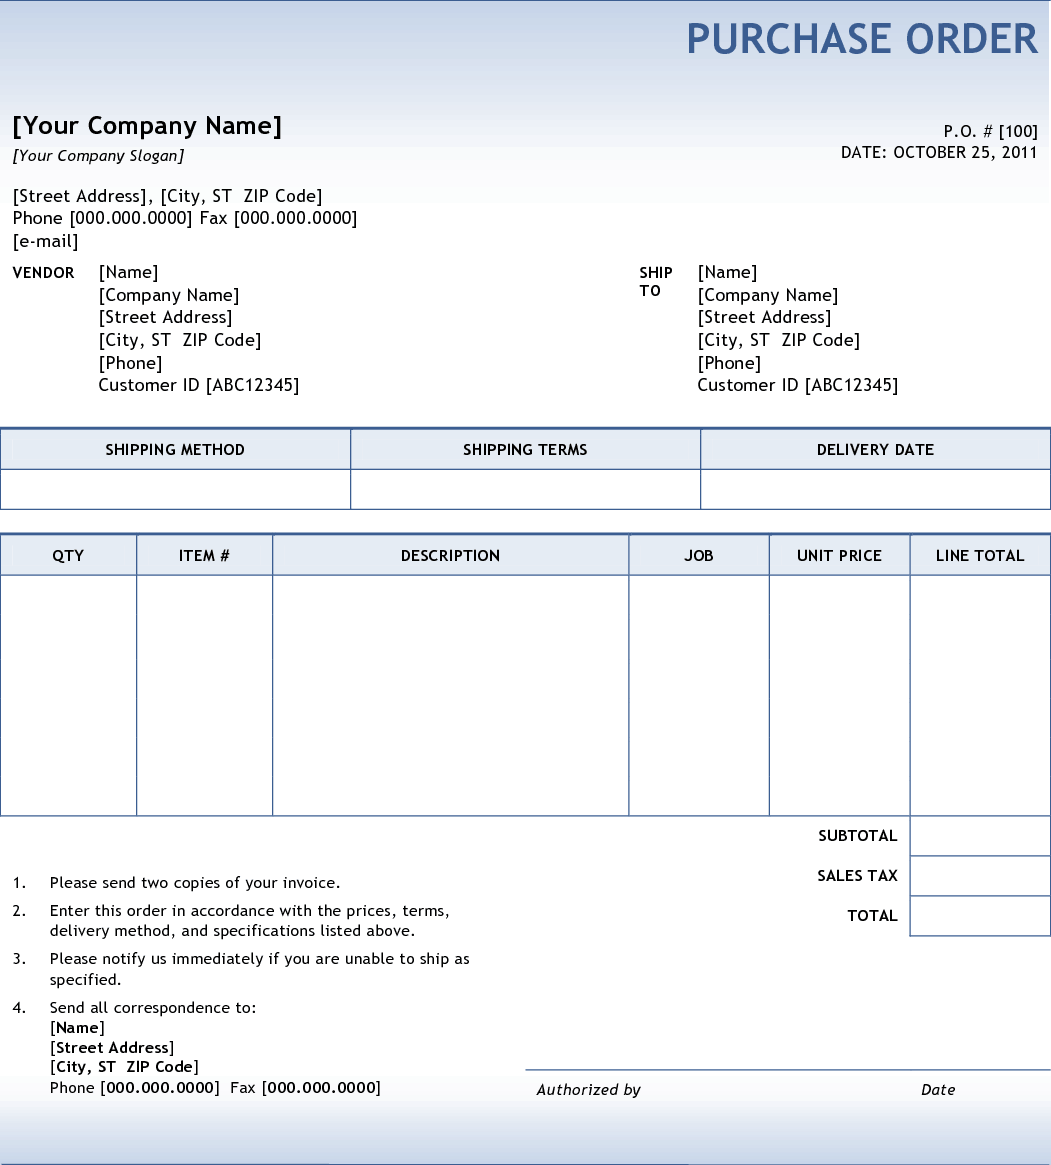 Purchase Order Template 22  Format Of A Purchase Order